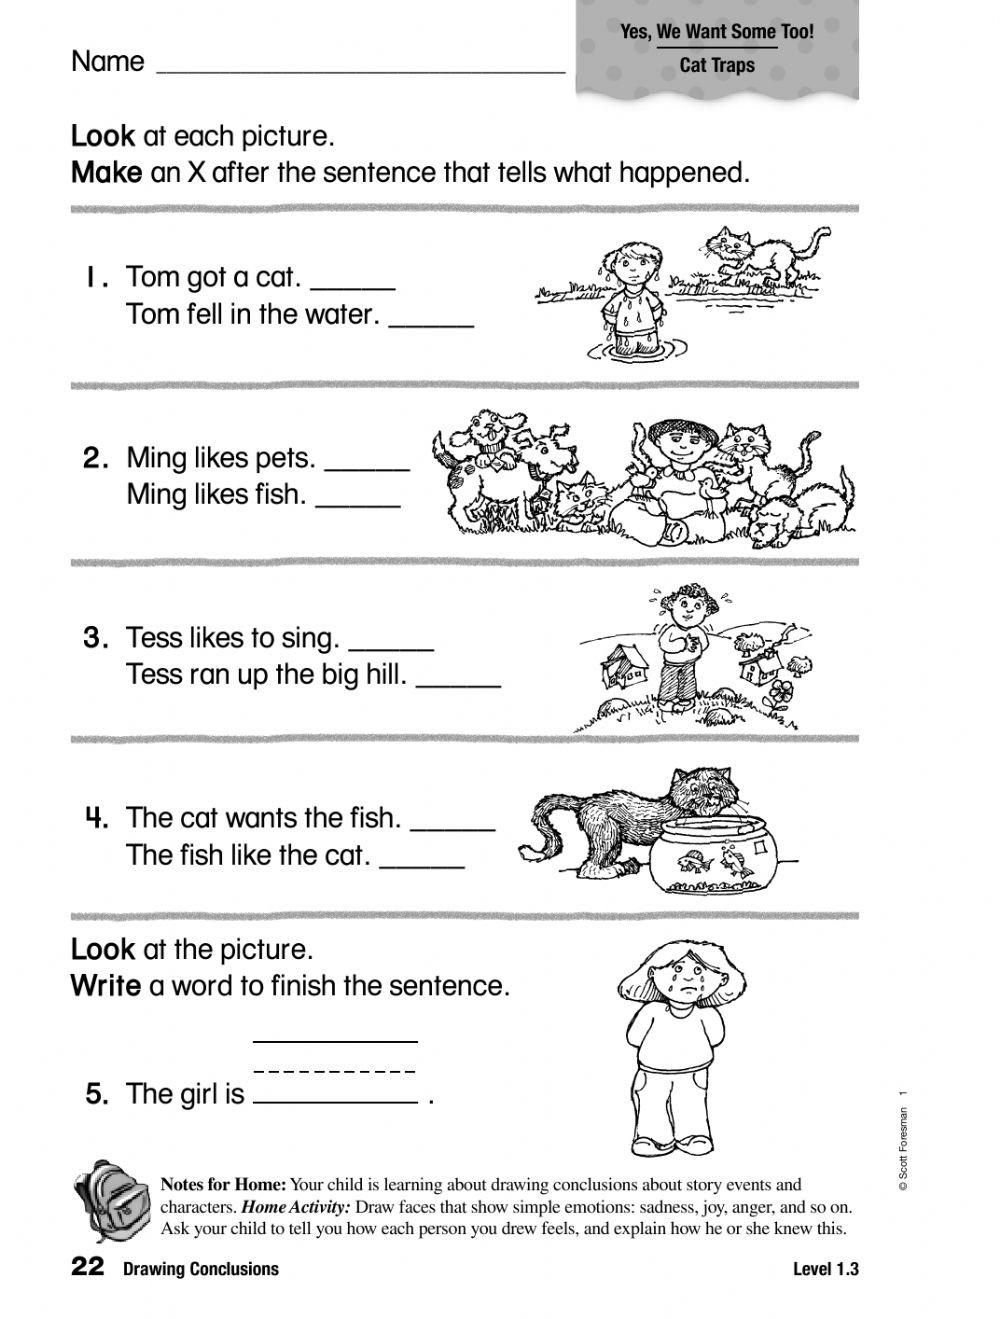 Drawing Conclusions Worksheets 4th Grade Grade E Math Activities Name Tracer Worksheets Printables